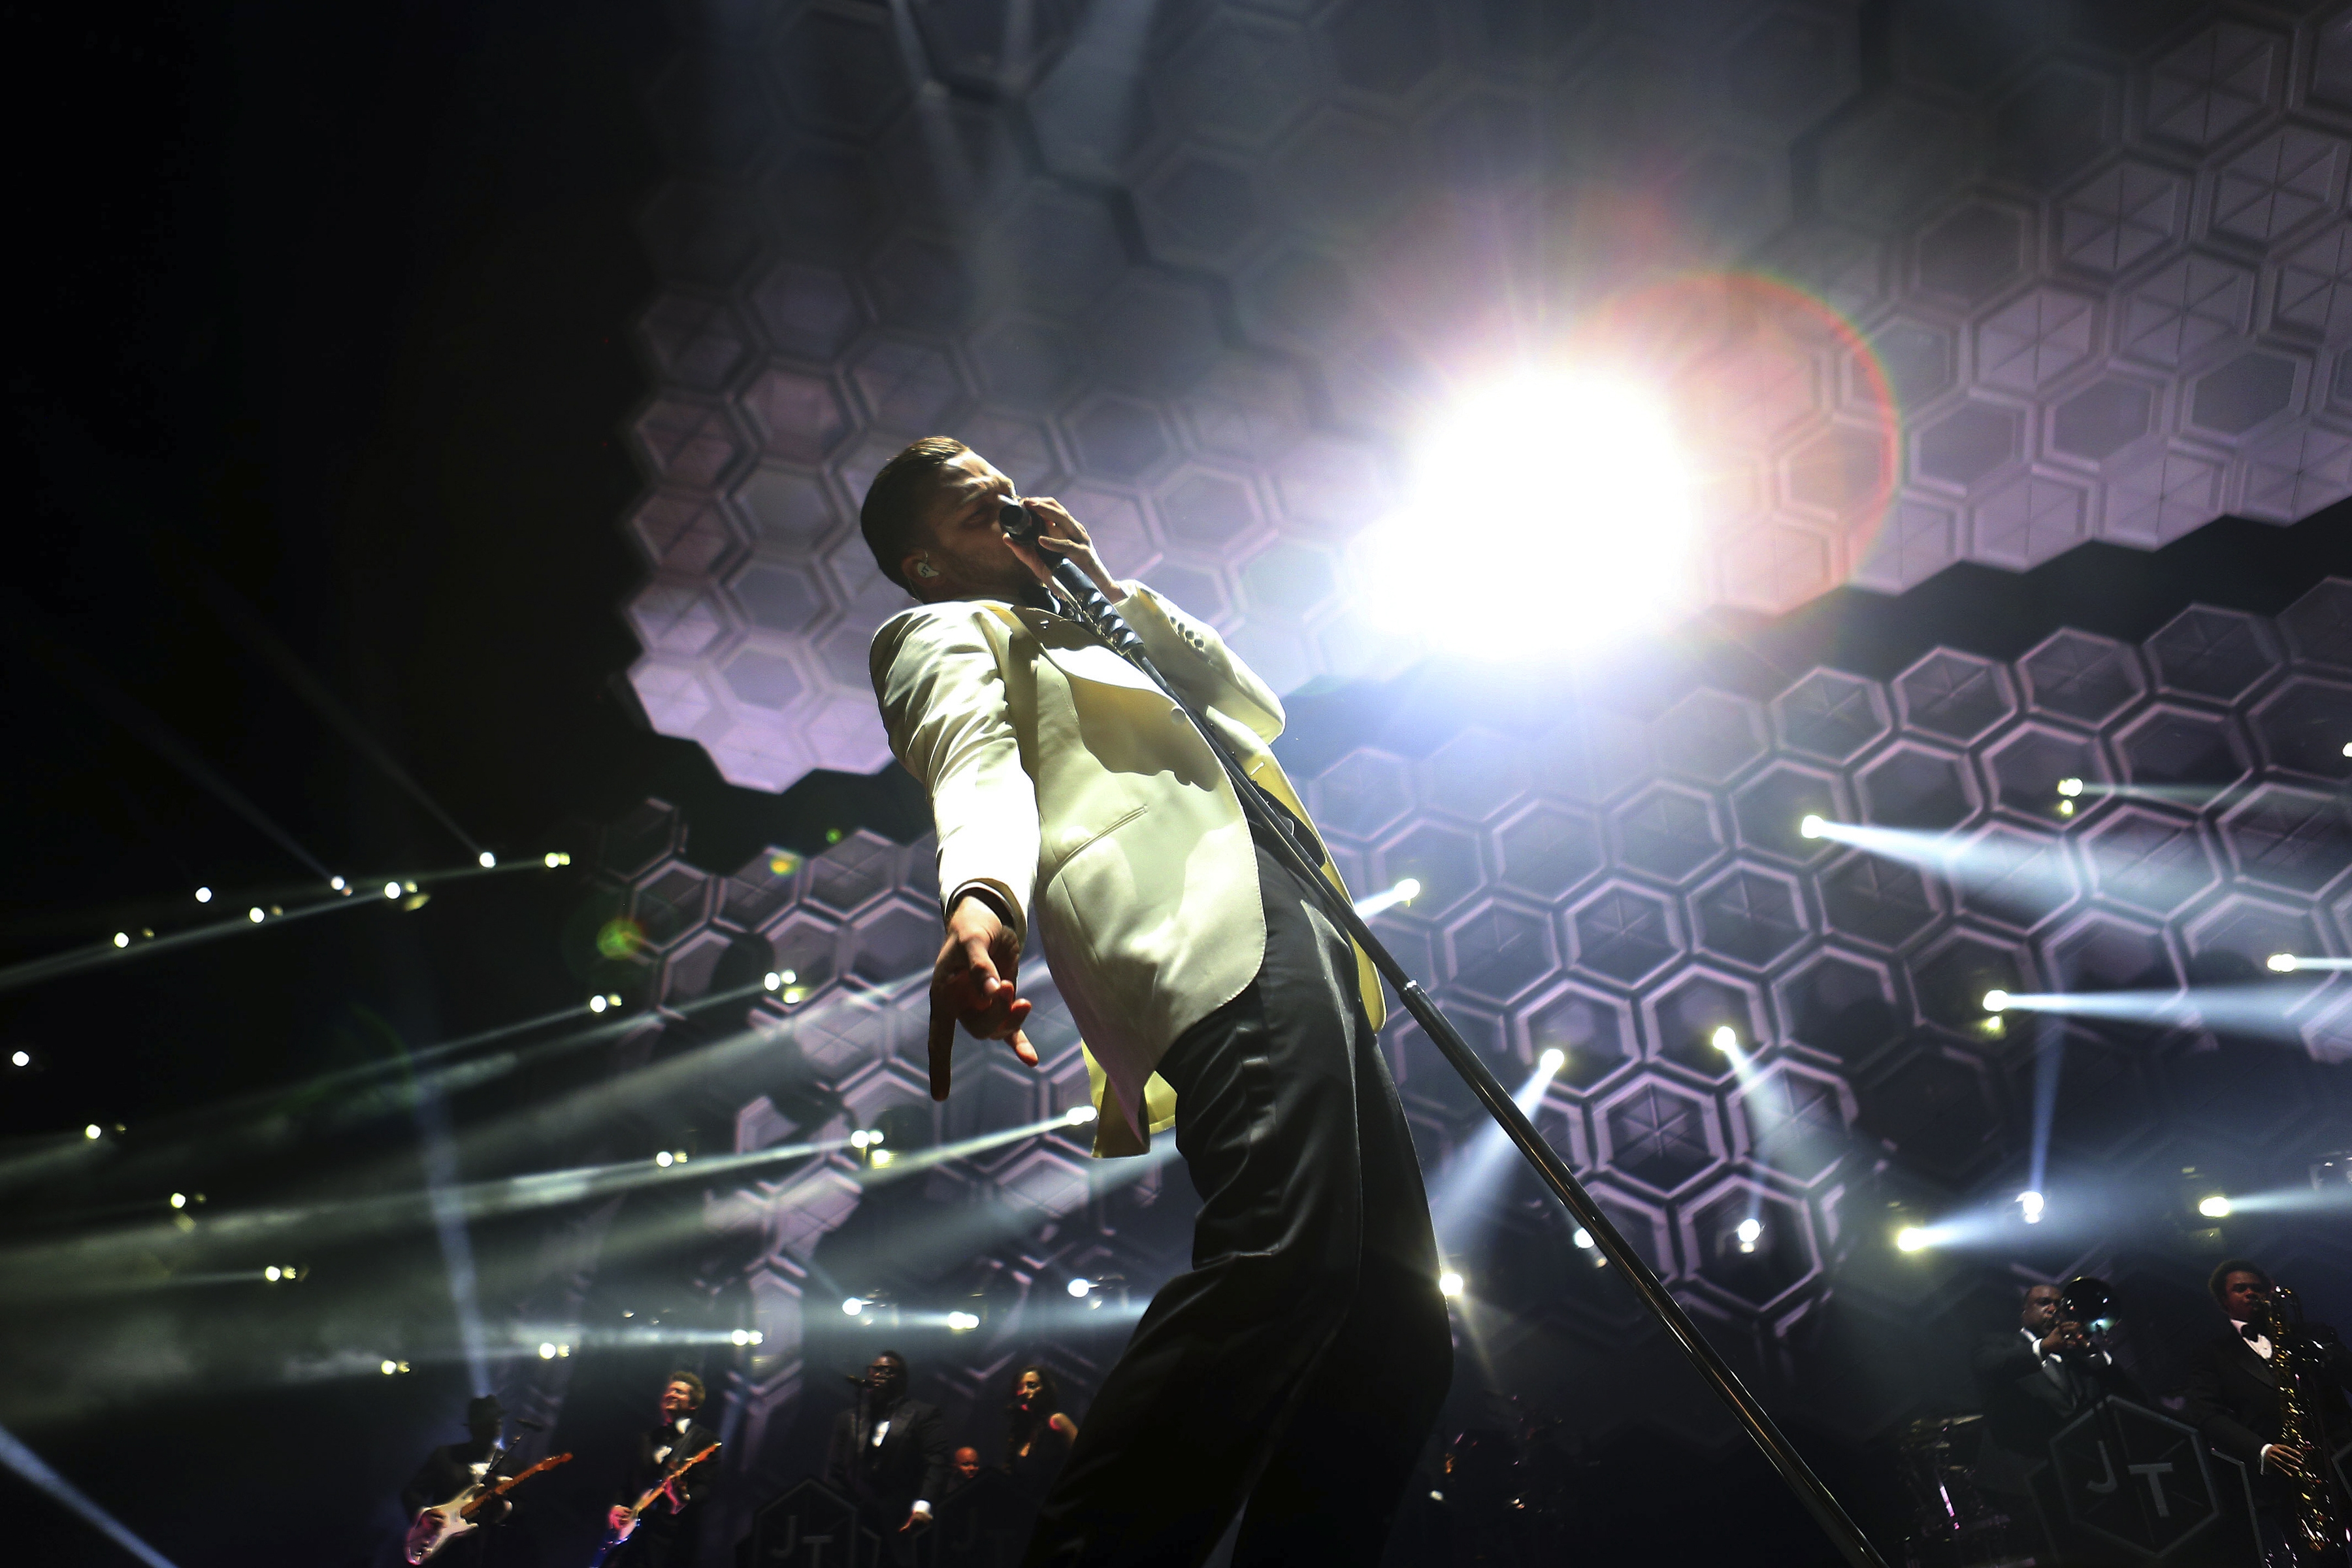 Justin Timberlake's connection with his fans crosses genre, gender lines.